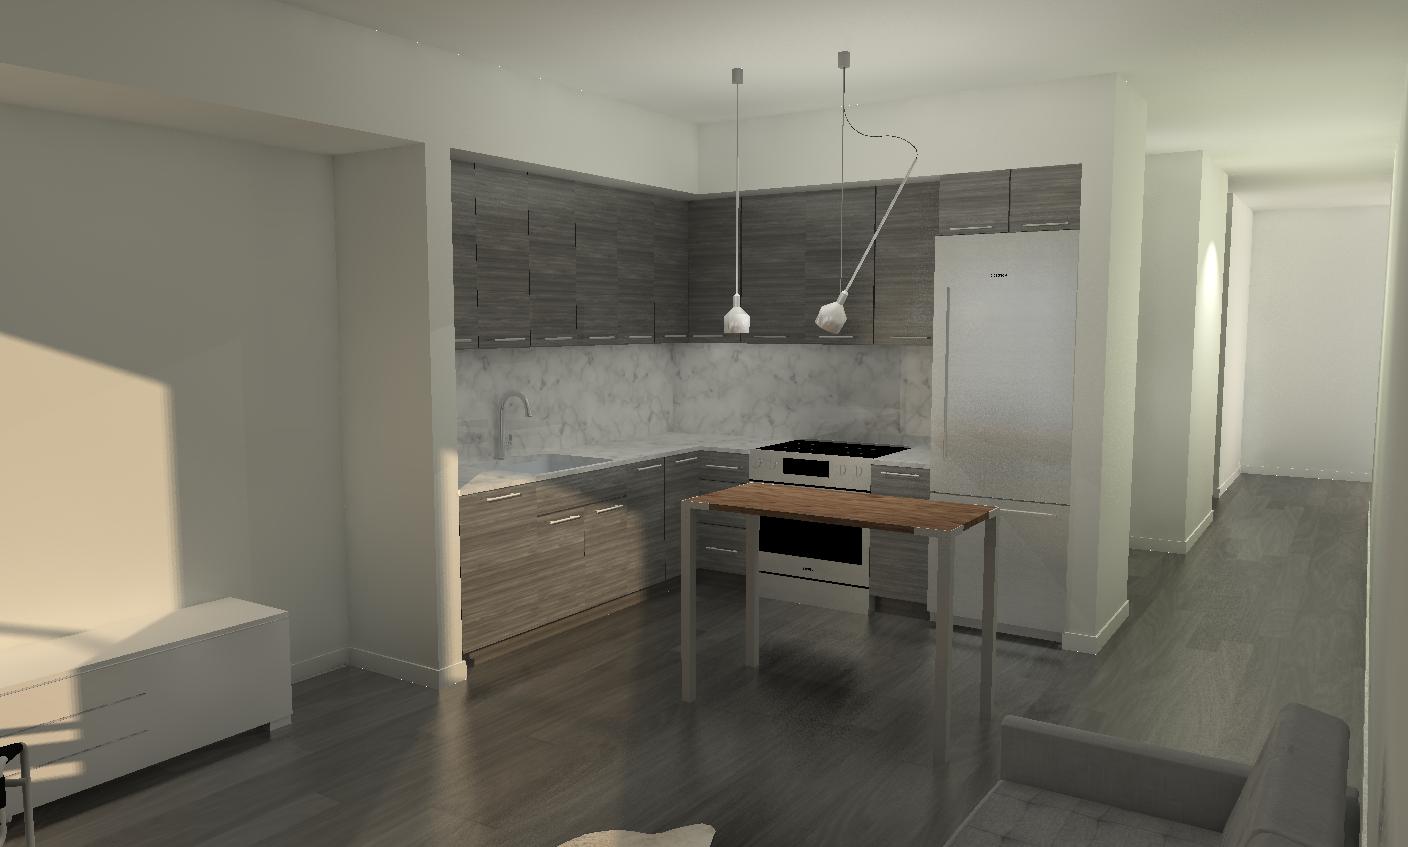 Ustanik - Final Project - Mar 2 - Kitchen 2018-03-02 12411500000.png